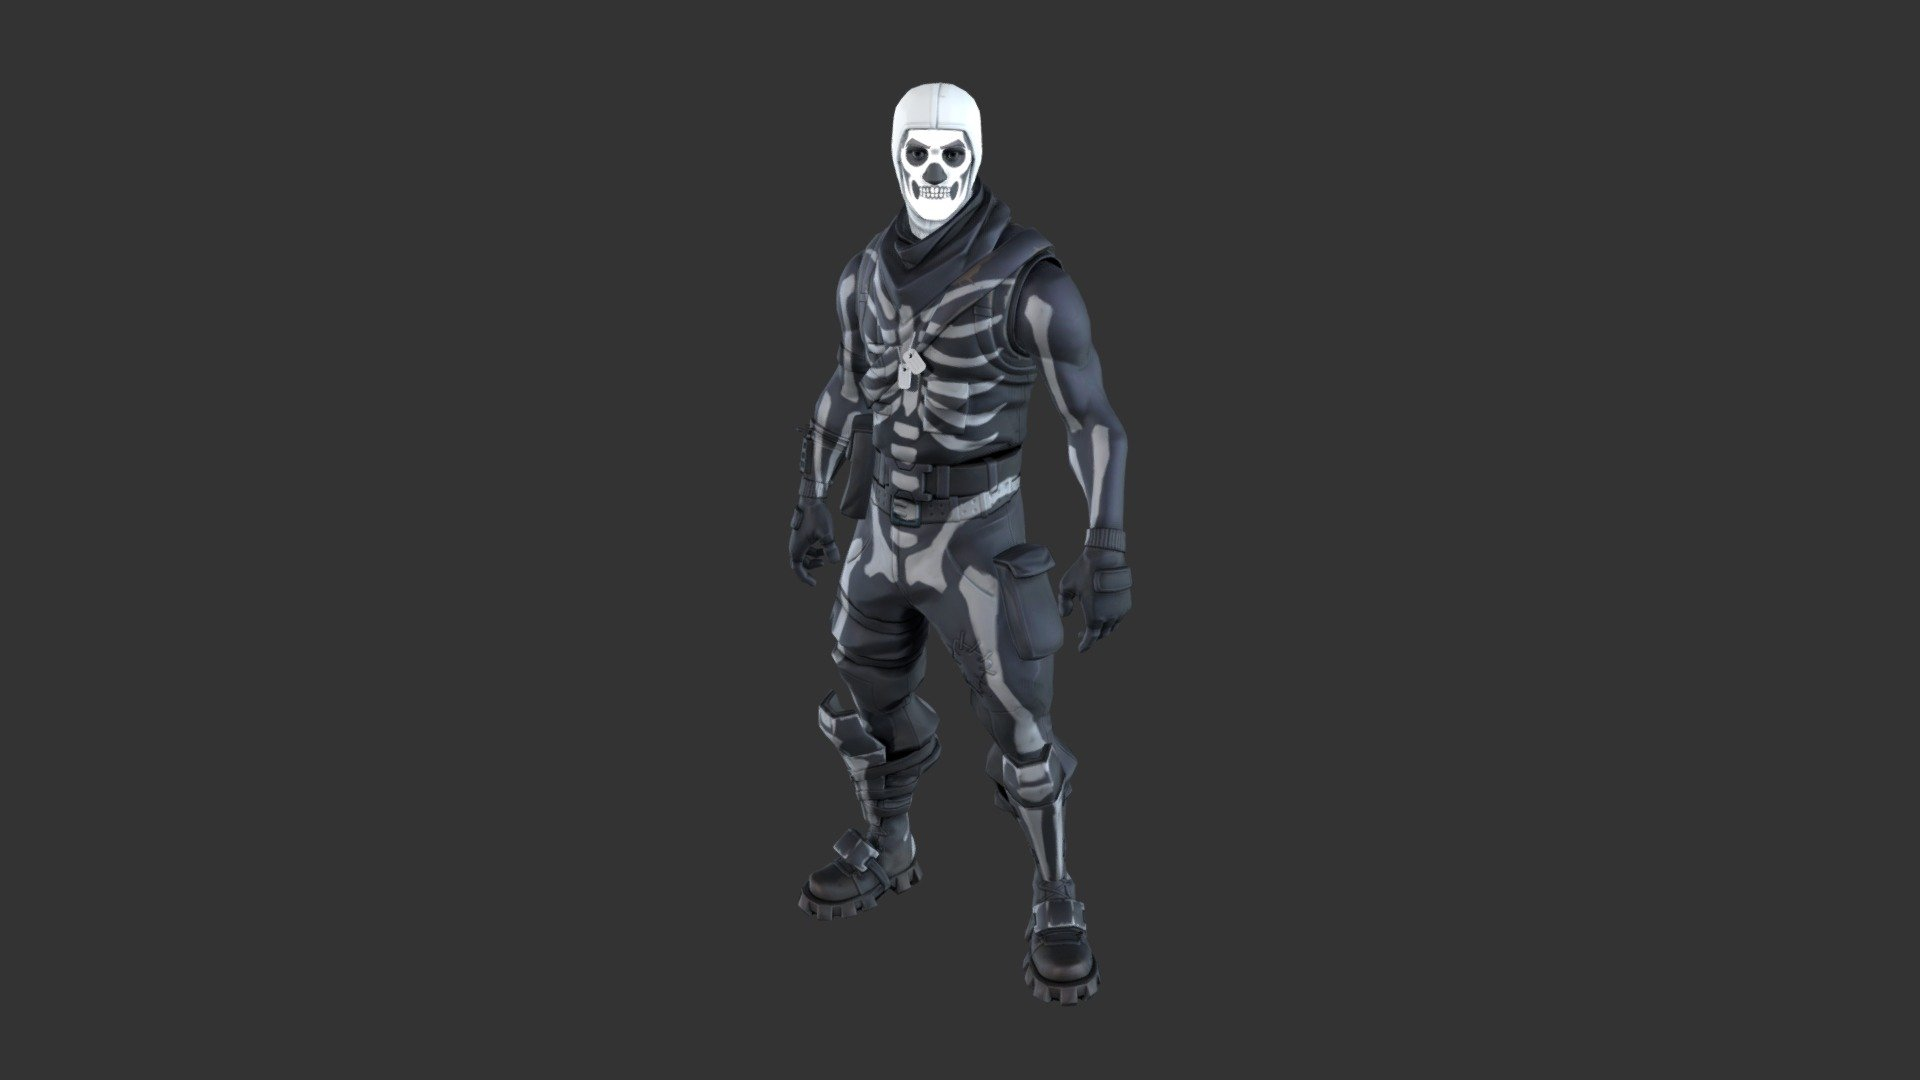 Skull trooper png free. Outfit d model by